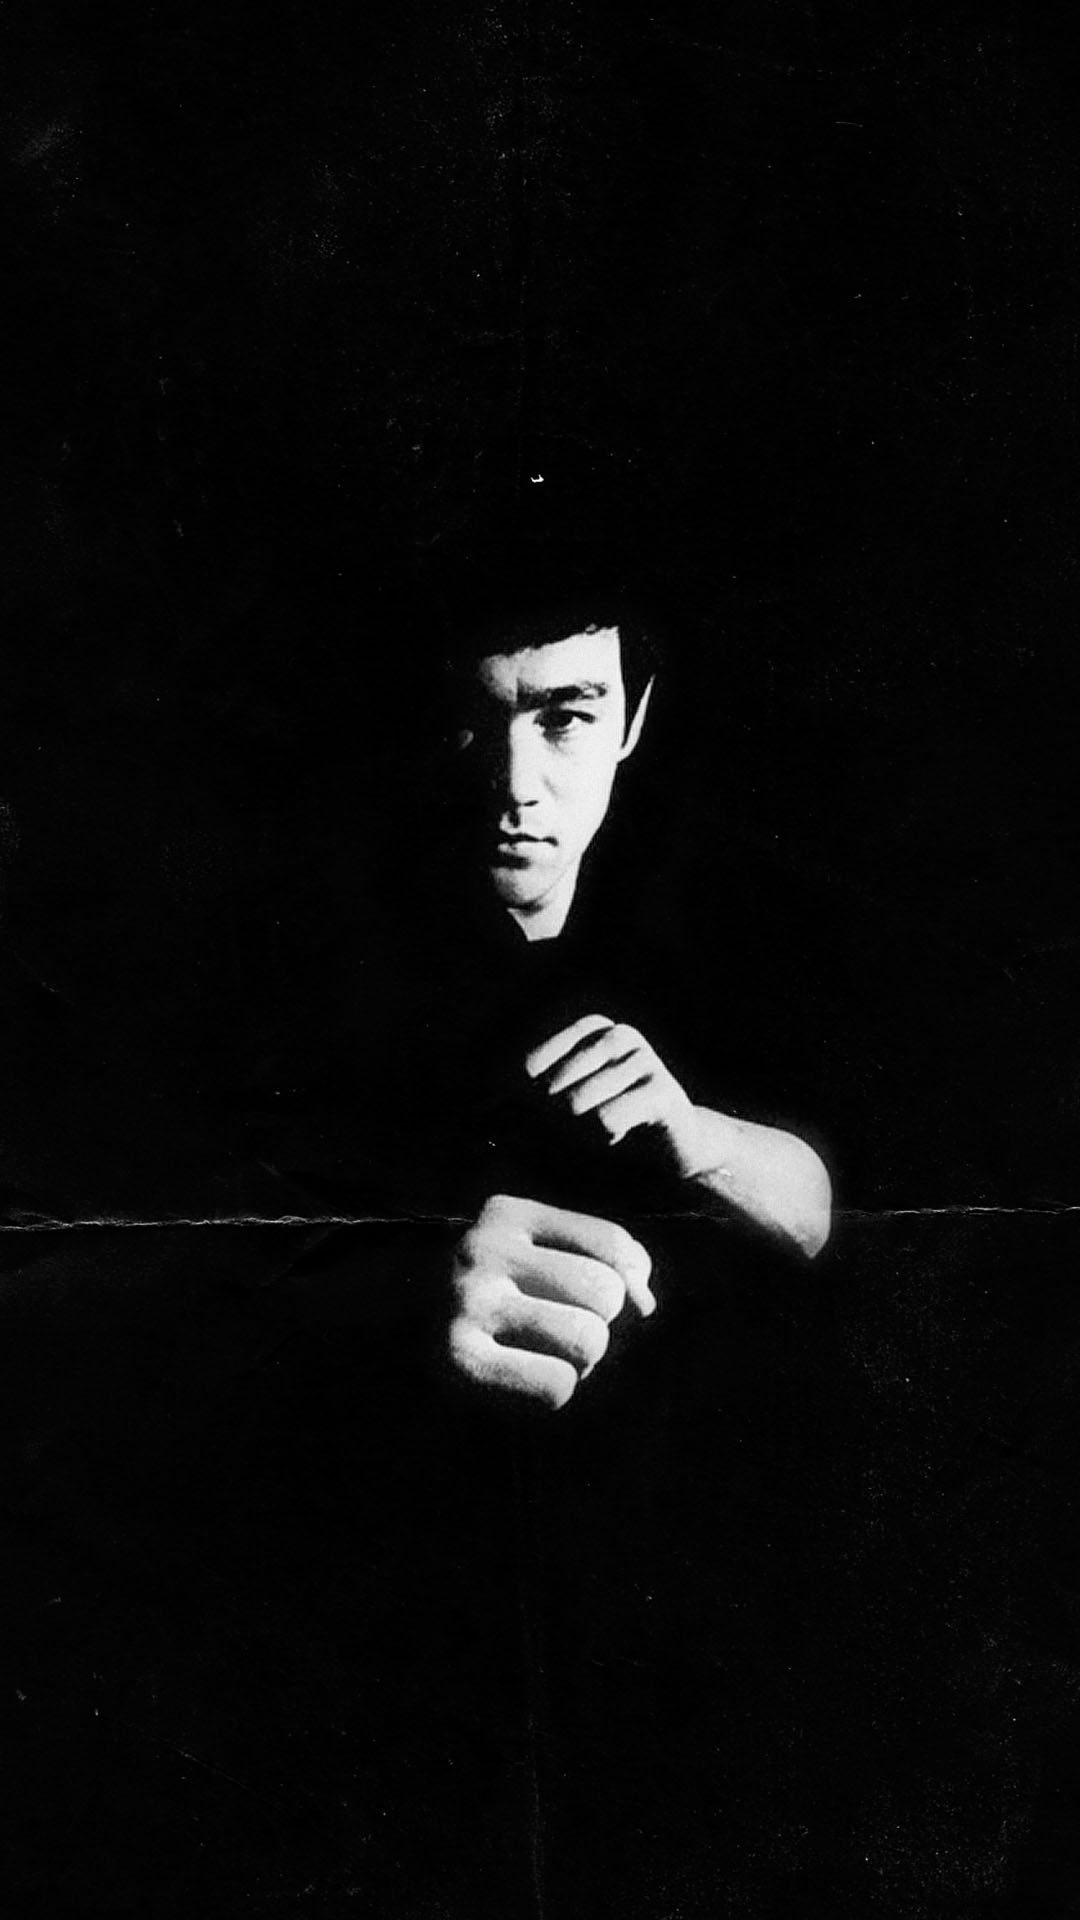 1080x1920 - Bruce Lee Wallpapers 10